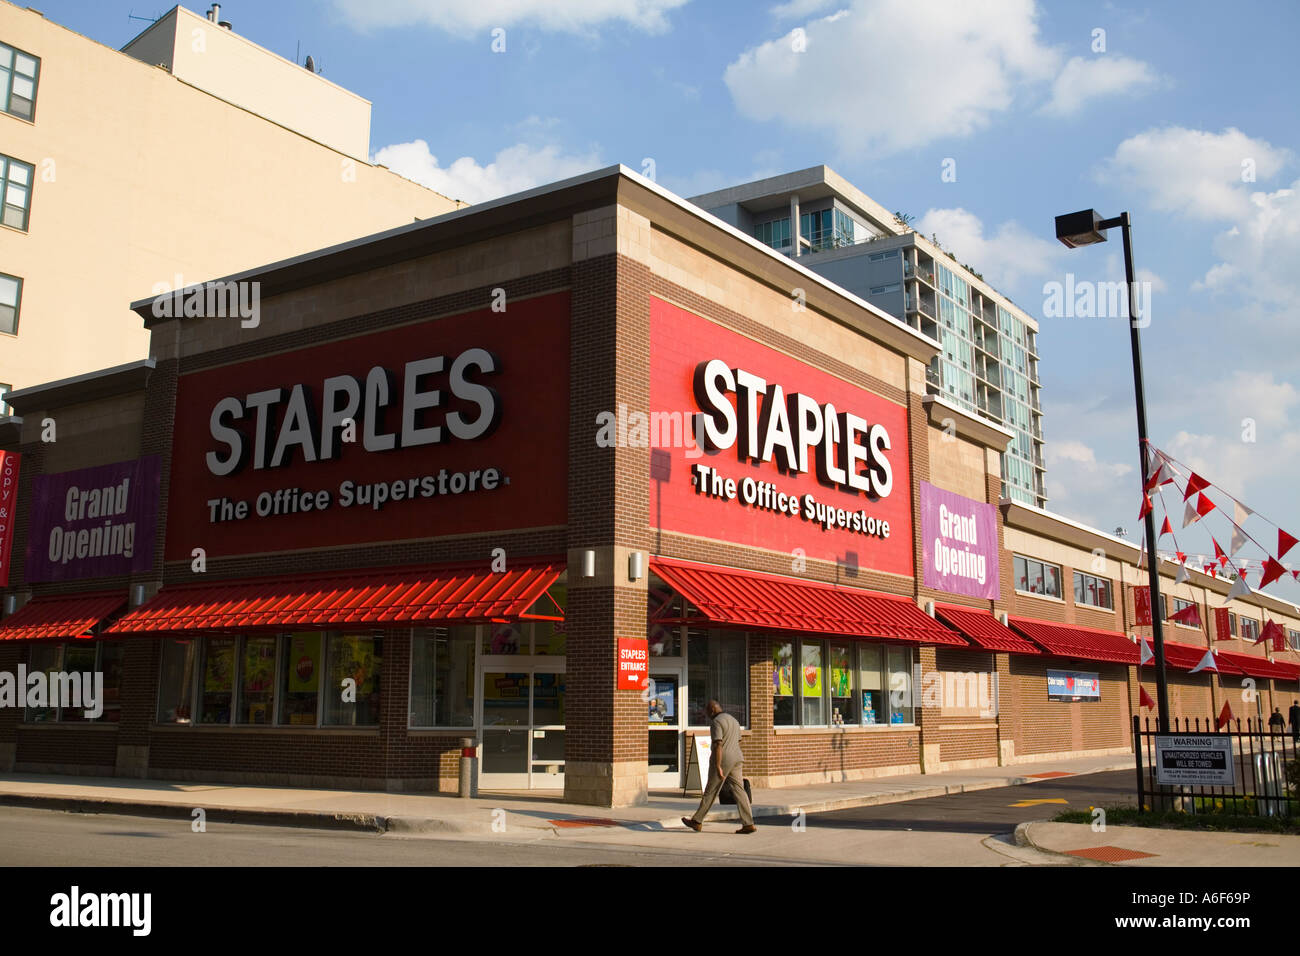 9 items· From Business: Staples Inc. is one of the leading office products companies in the world. The firm offers a range of office products, such as printer inks, toner cartridges, cab.